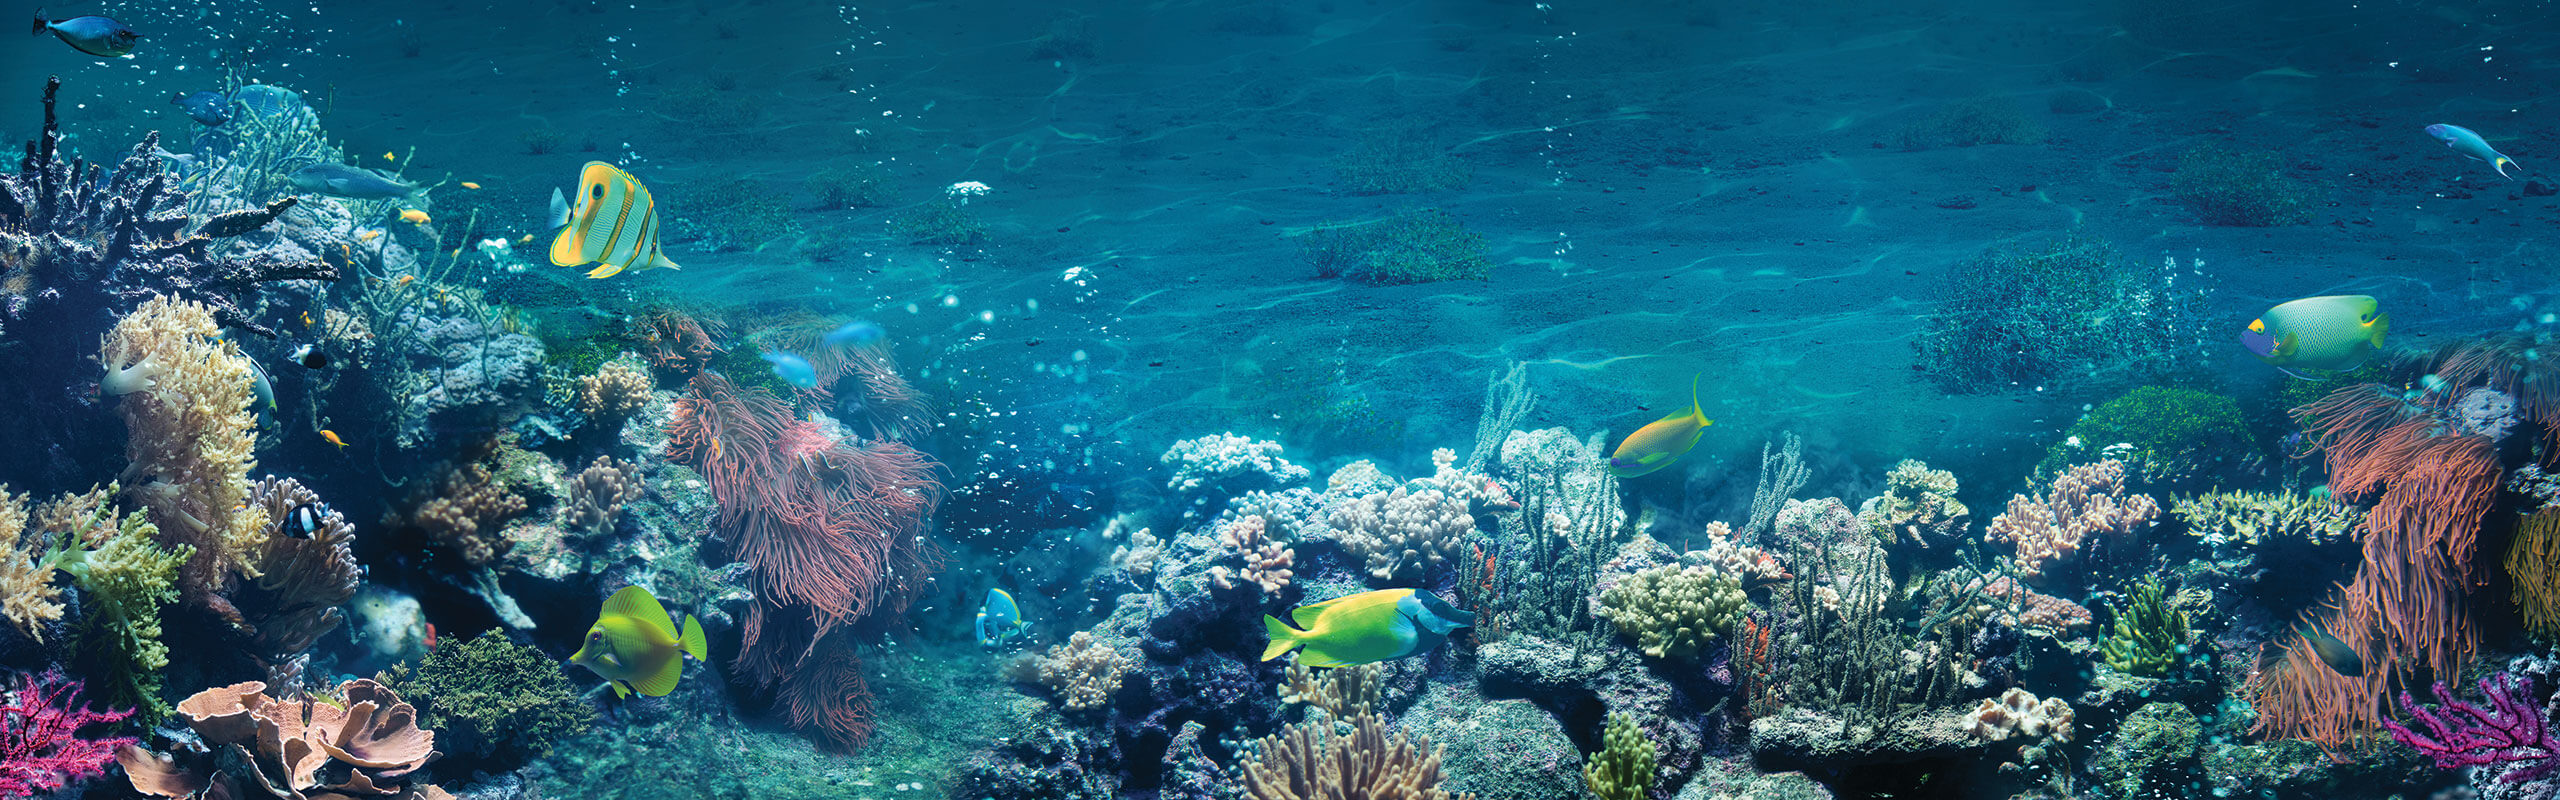 Underwater view of fish and coral